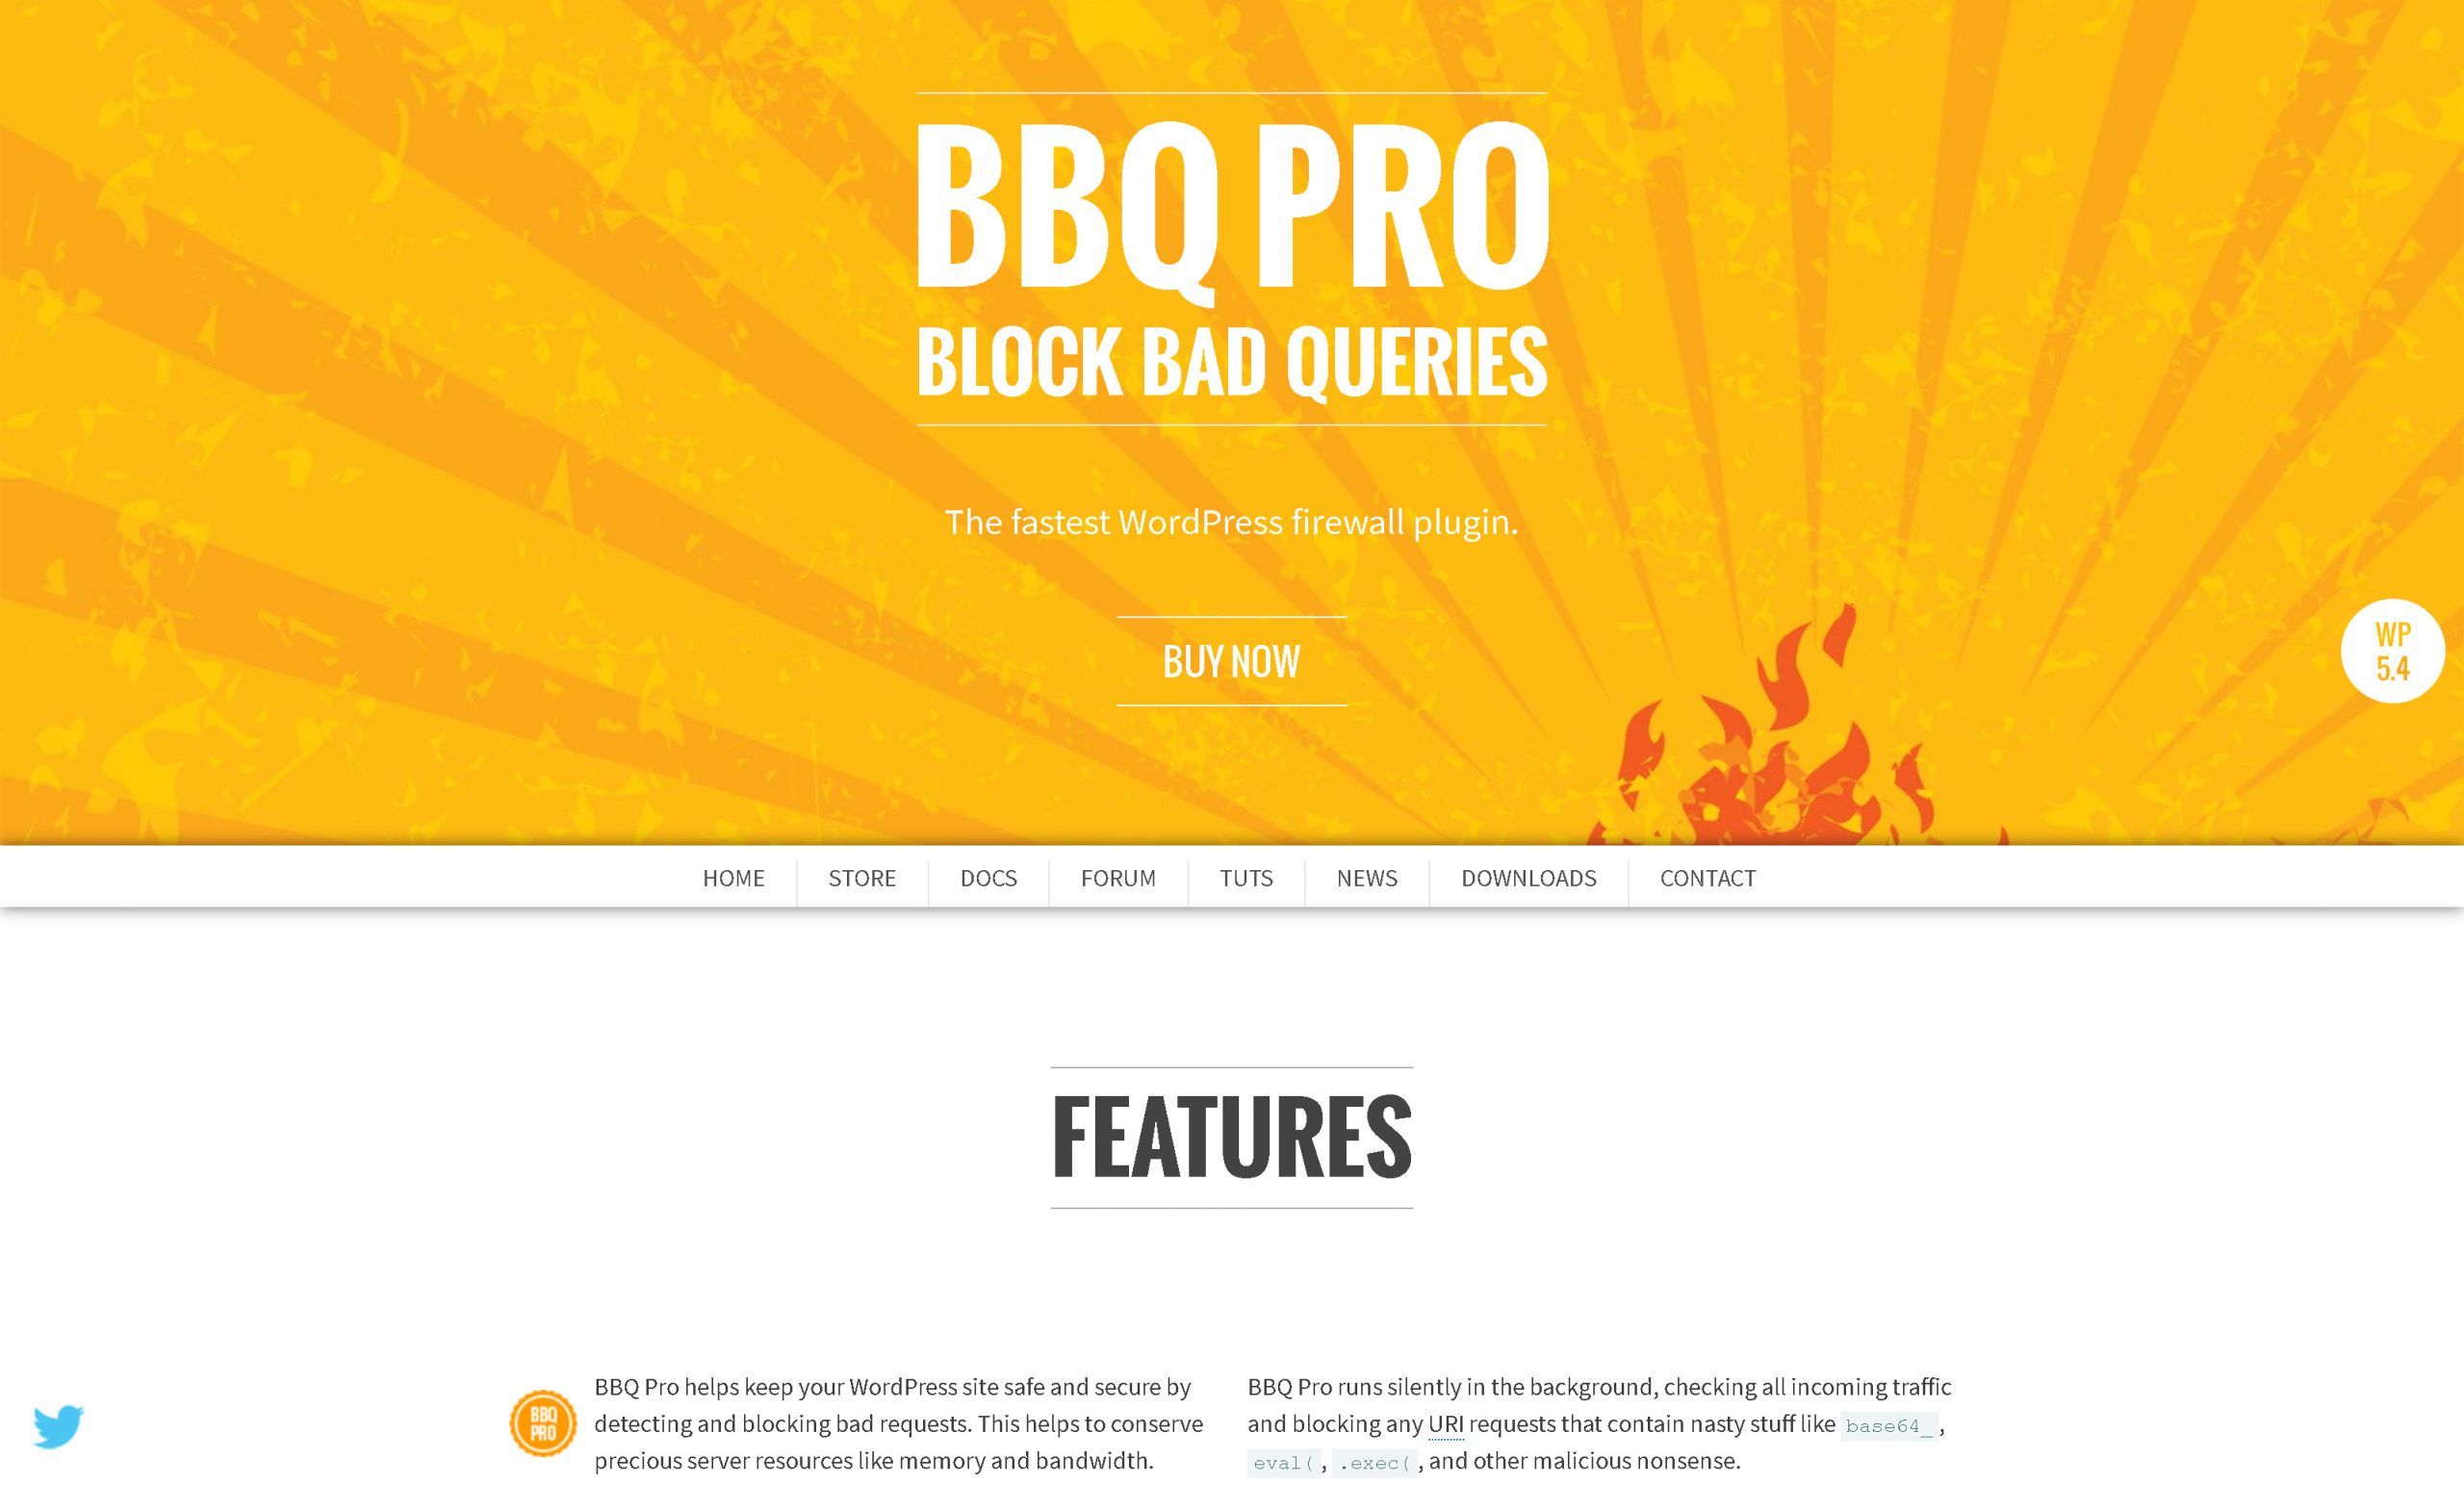 BBQ Pro Block Bad Queries 2.7 – The fastest WordPress firewall plugin